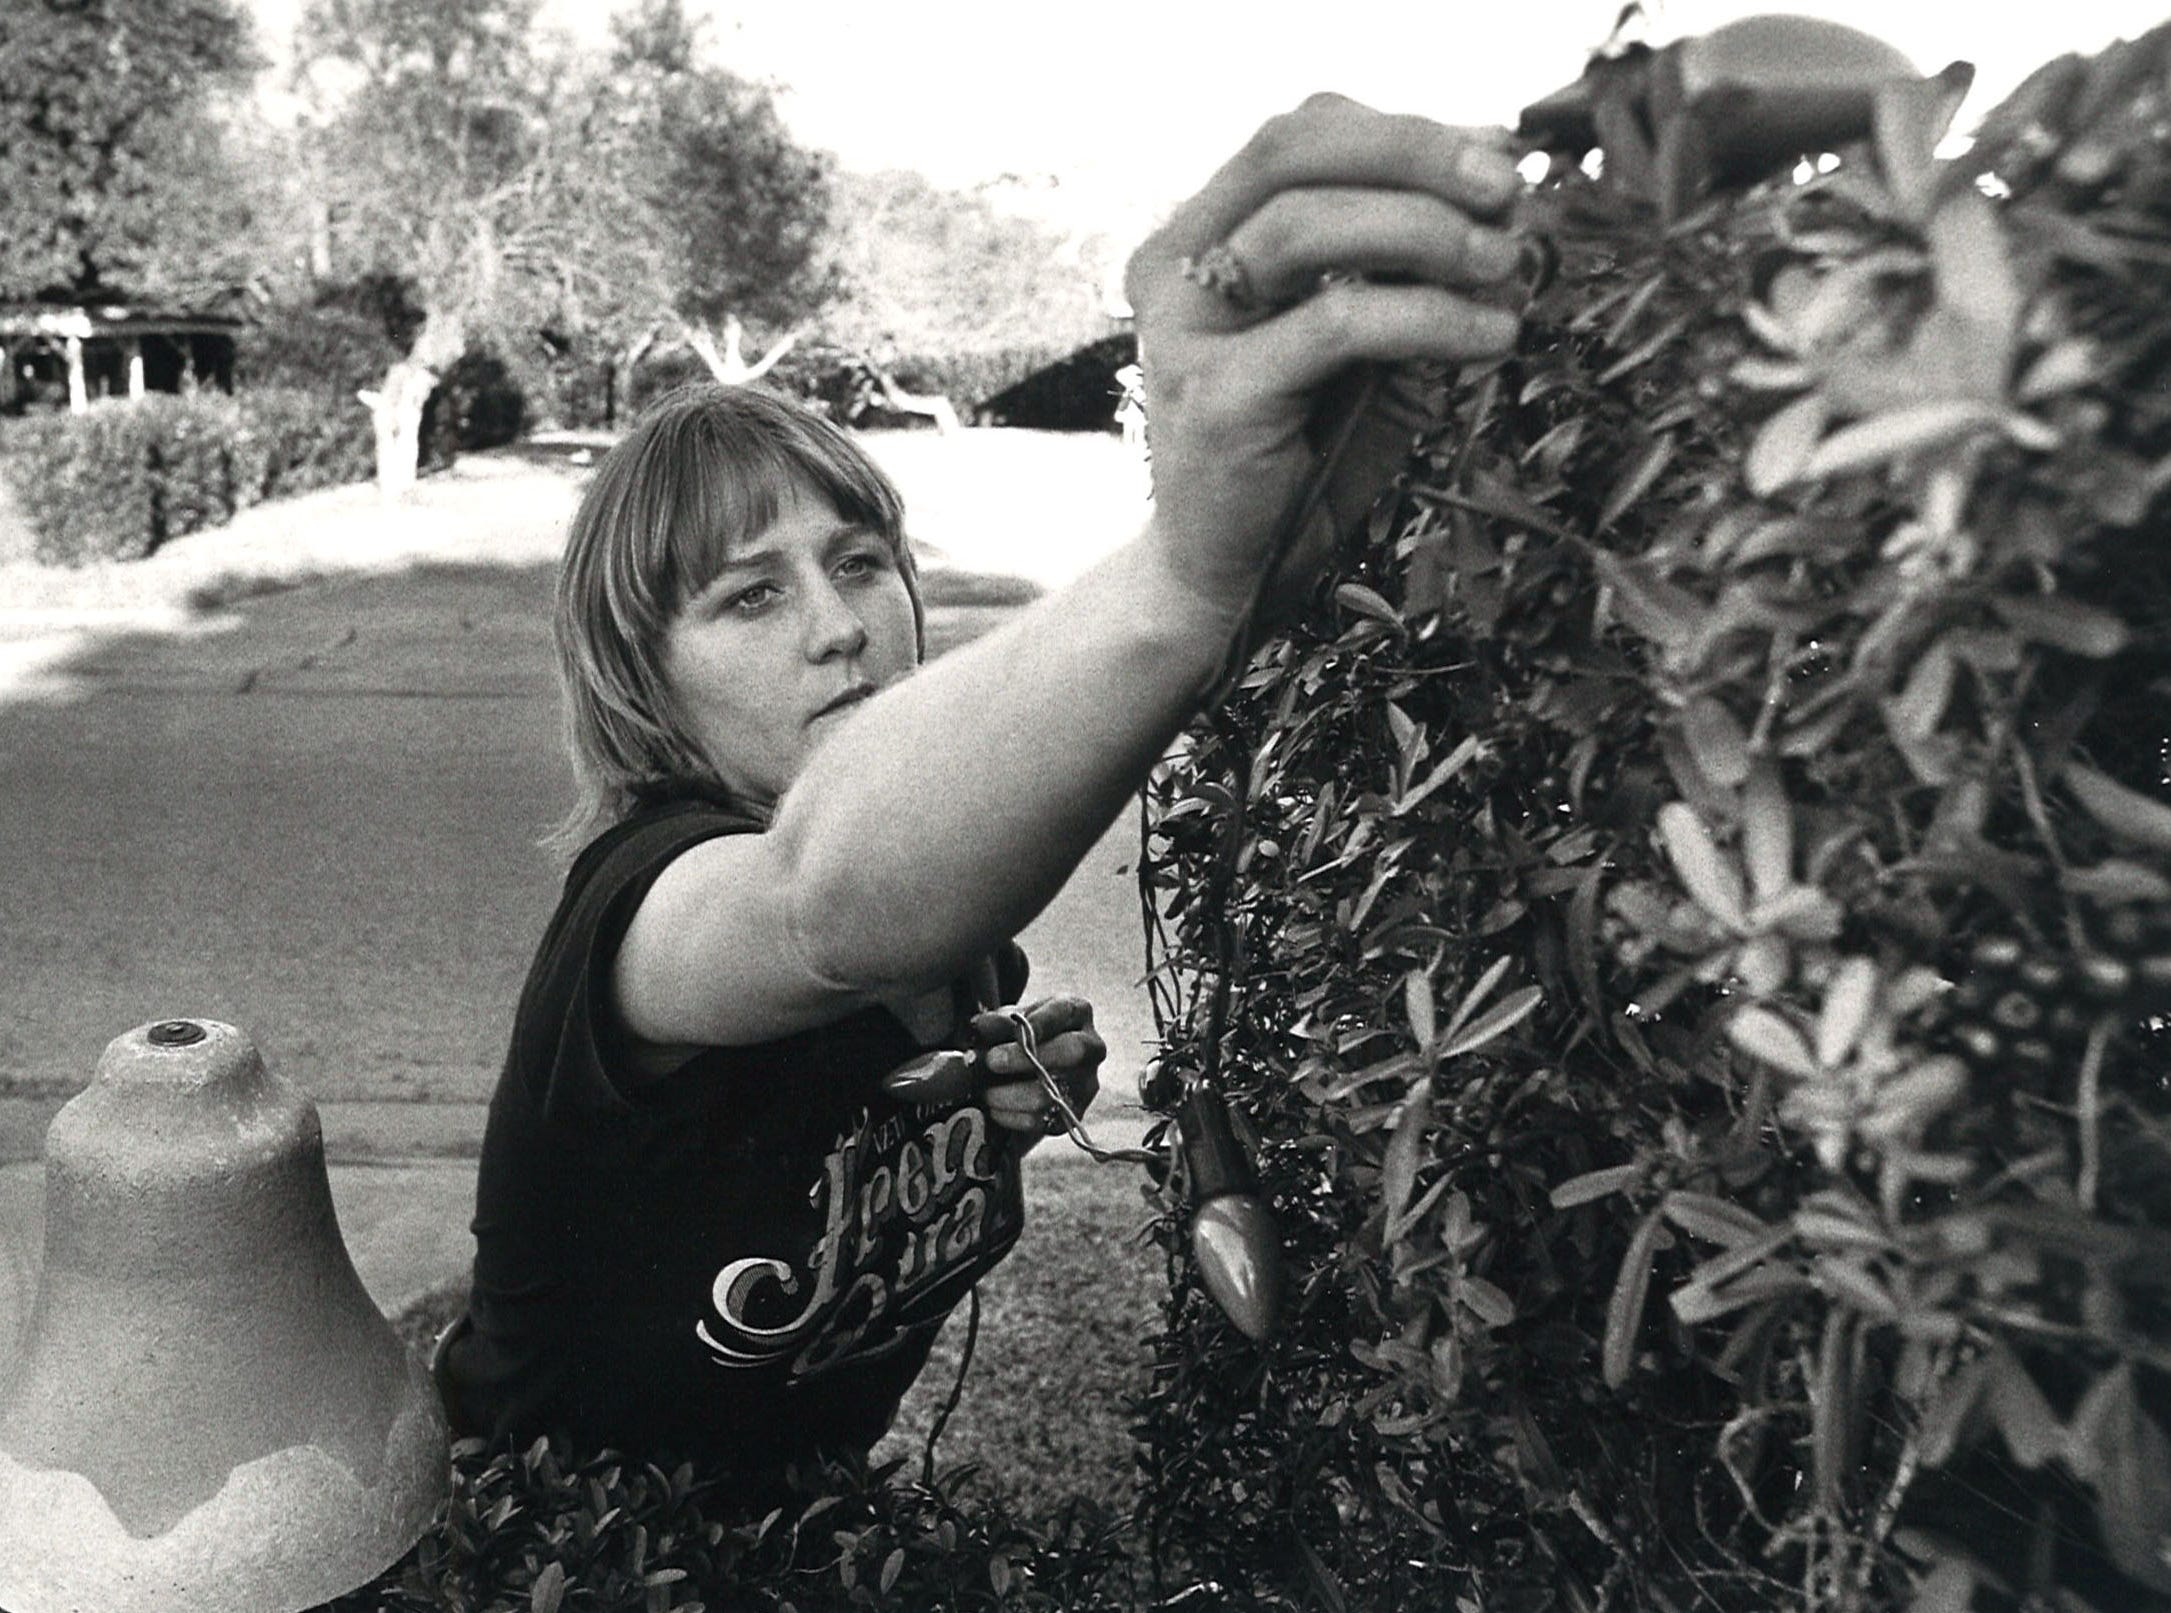 Brenda Aldridge, daughter of Billy Aldridge, works on one of the many different decorations on display at their home on Delaine and Doddridge Dec. 3, 1983. The house was one of the most popular sights during the holiday season for more than 30 years.